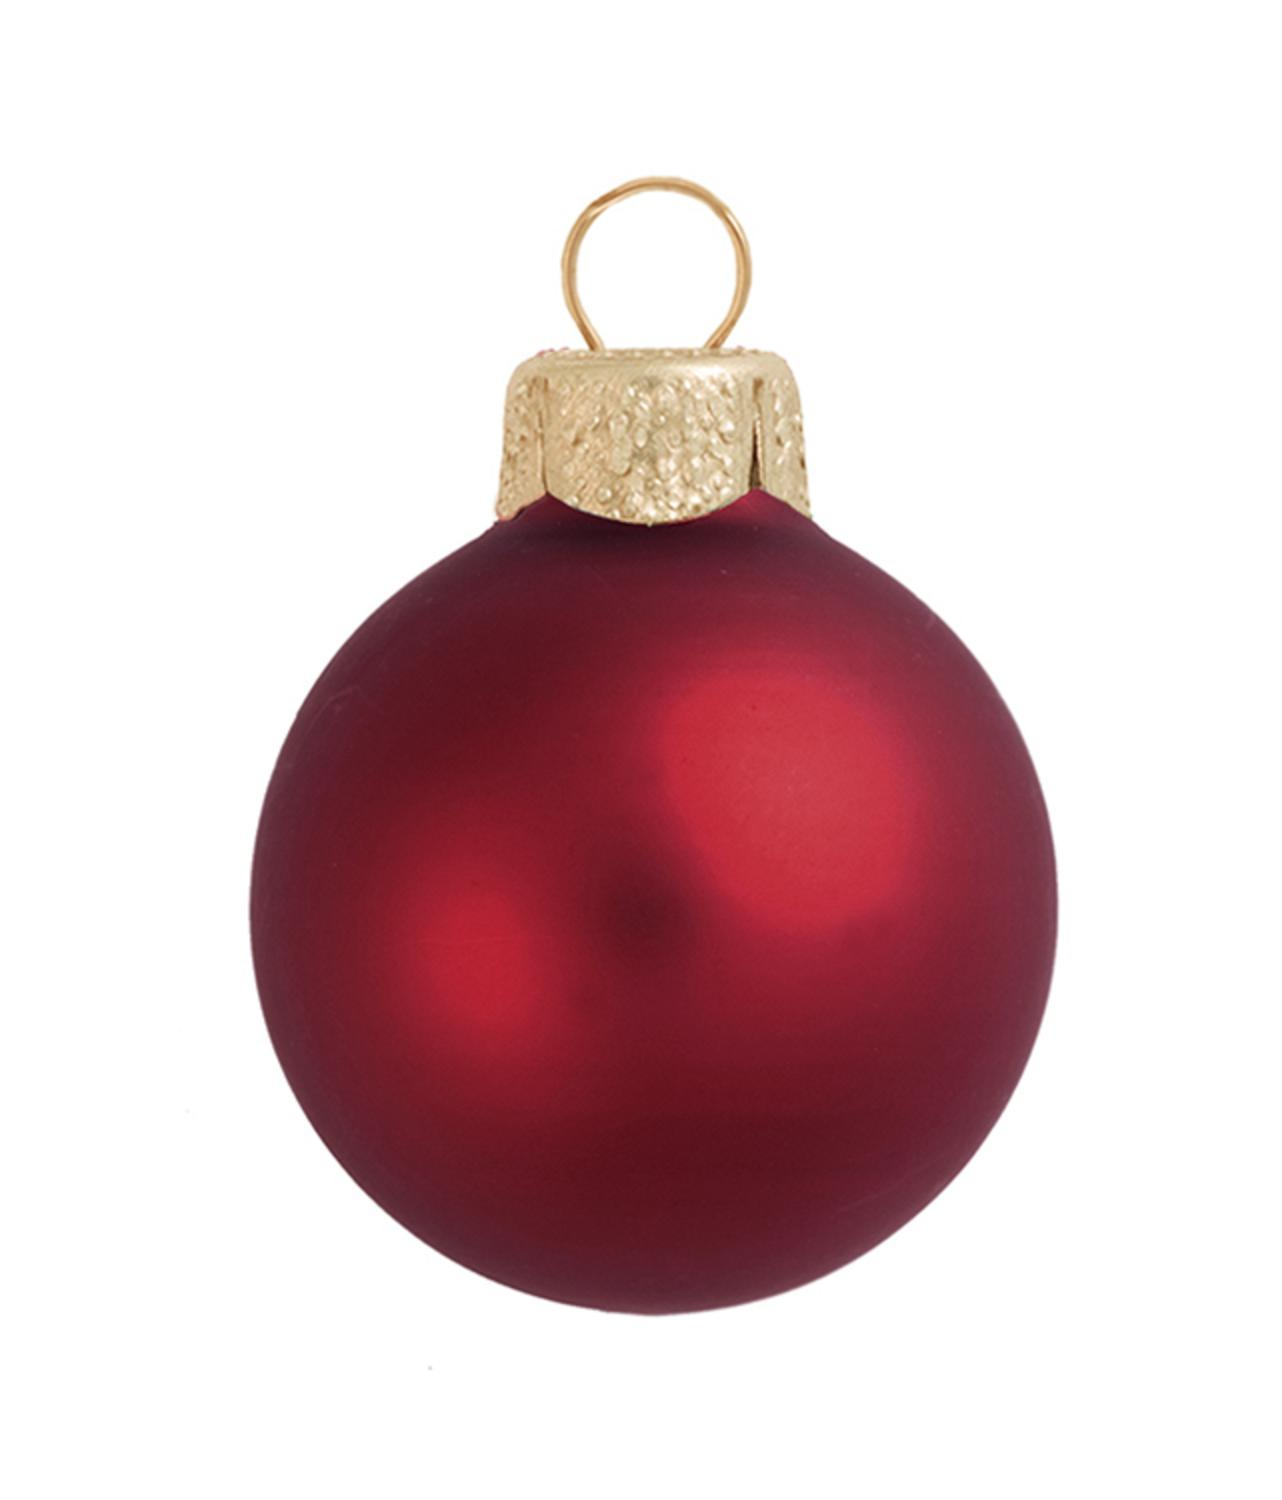 Red glass ball ornaments -  4ct Matte Burgundy Red Glass Ball Christmas Ornaments 4 75 120mm